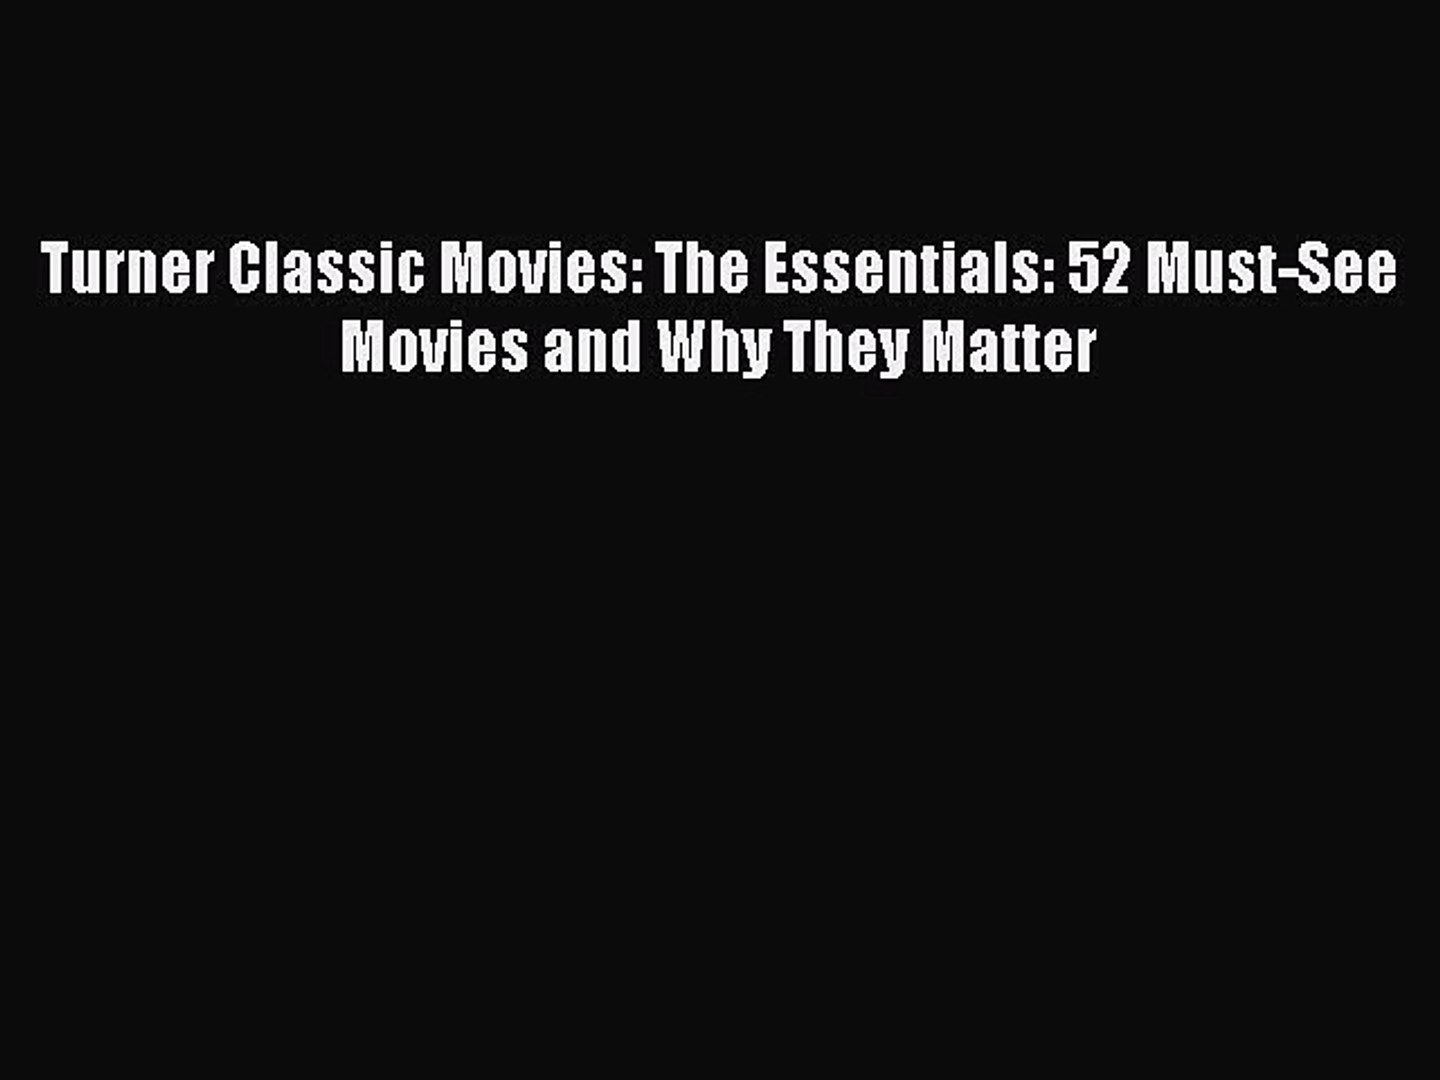 Download Turner Classic Movies: The Essentials: 52 Must-See Movies and Why They Matter Ebook